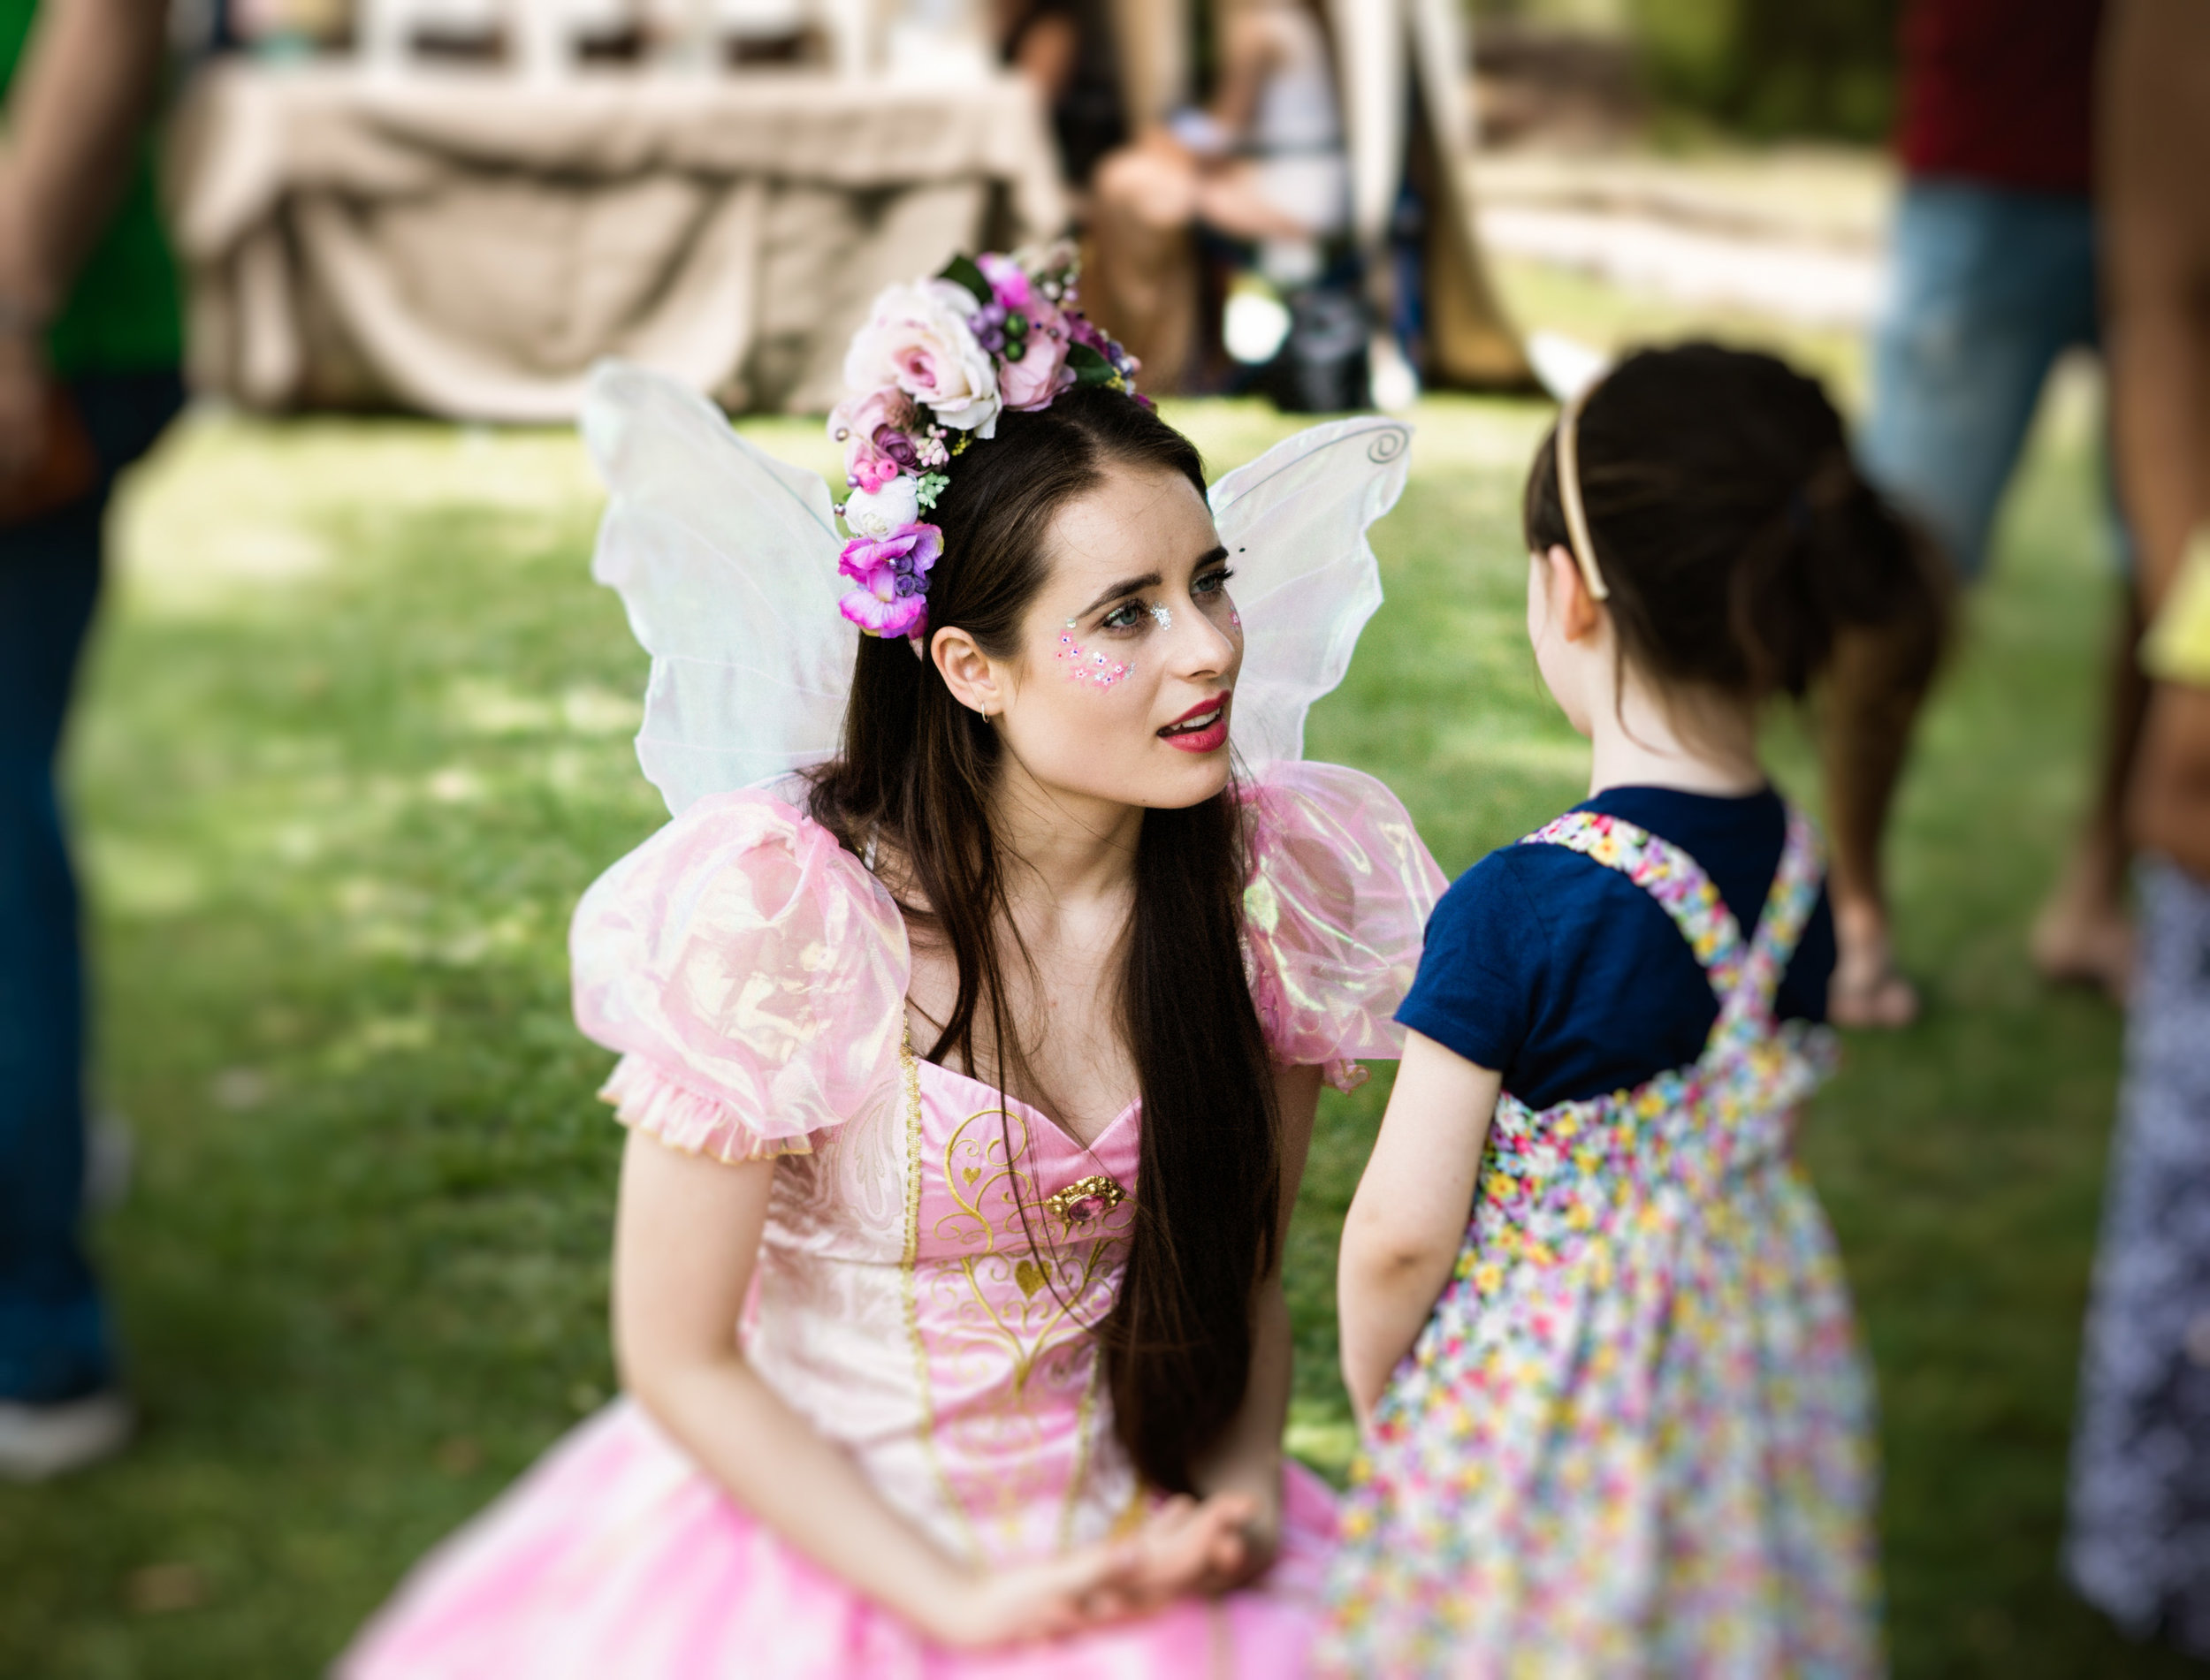 We have a special guest the children will just adore meeting! Rhiannon the Flower Fairy will be wandering the market between 10-12pm.